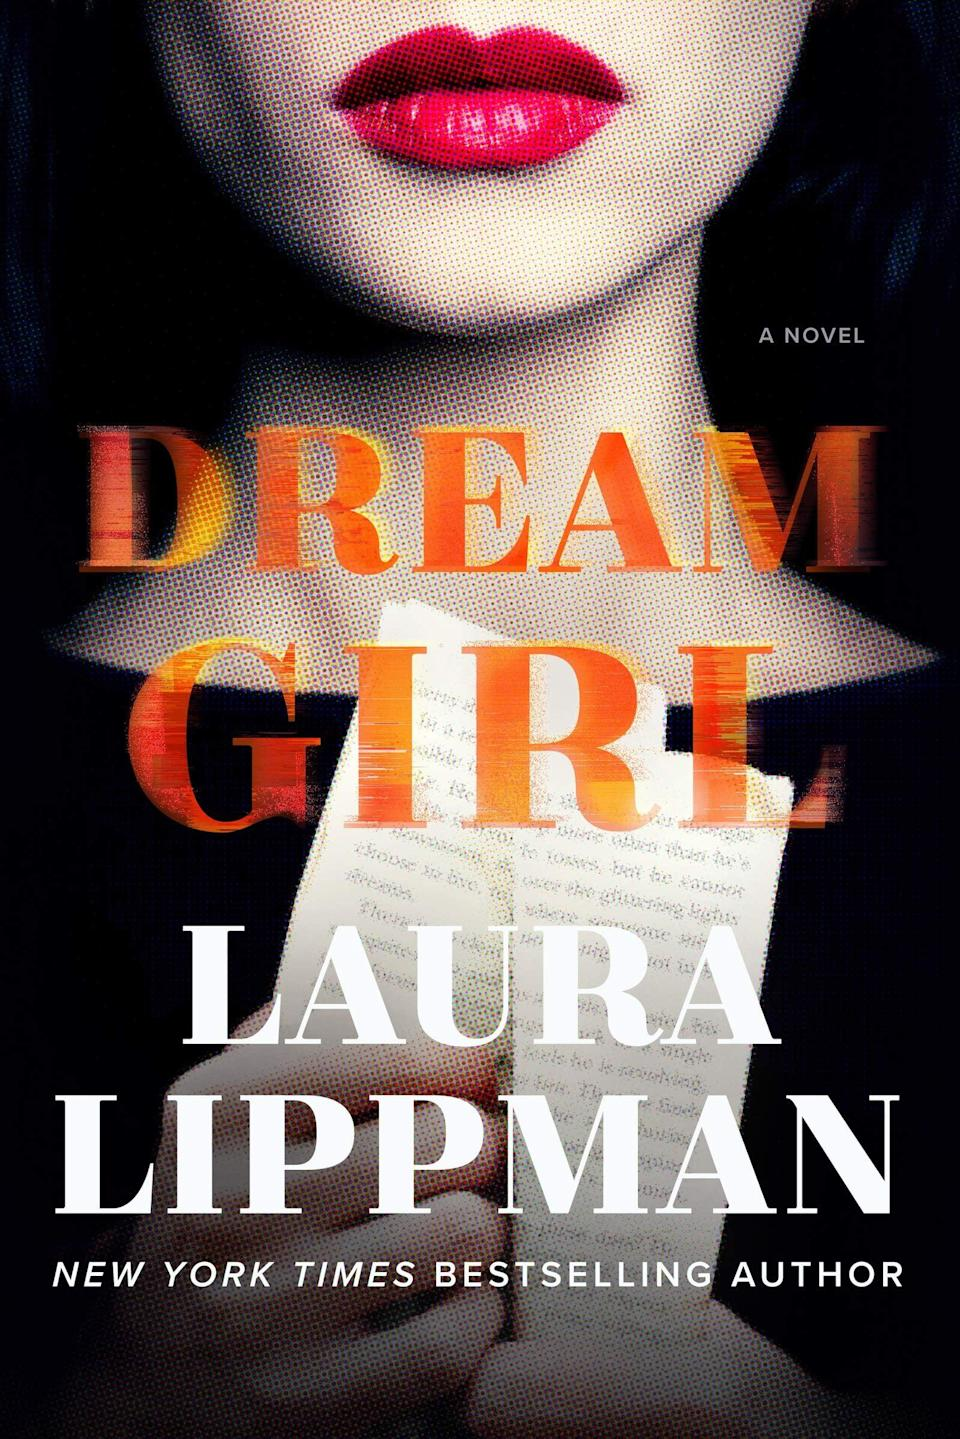 <p>Laura Lippman's <span><strong>Dream Girl</strong></span> is a chilling novel that will make you question everything. After an accident leaves author Gerry Andersen housebound with no one for company but his assistant and his nurse, he finds himself rattled by a call from a woman who claims to be the lead character in his book. But that character isn't real, and when he tries to get to the truth behind who made the eerie call, he quickly discovers his sanity may depend on him unraveling this mystery. </p> <p><em>Out June 22</em></p>